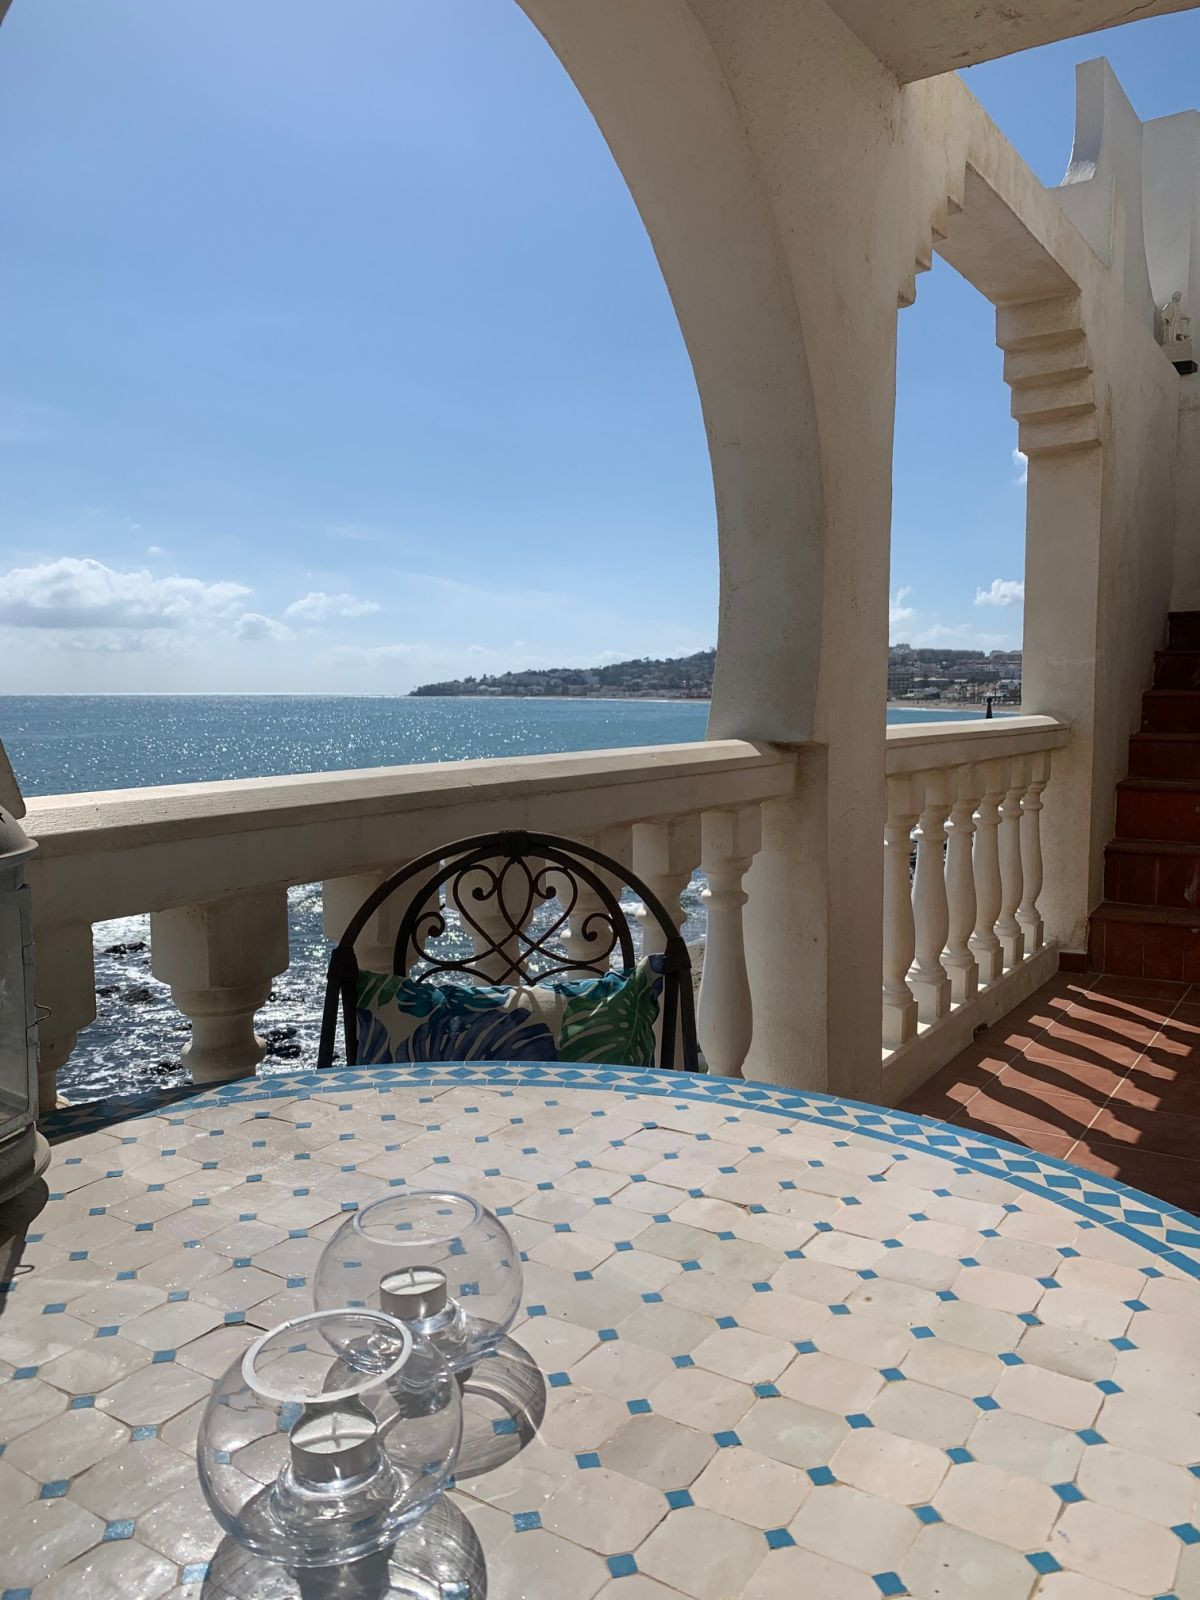 Do you want to wake up to the sound of the waves? Then this is for you! Finally, there is an apartme, Spain